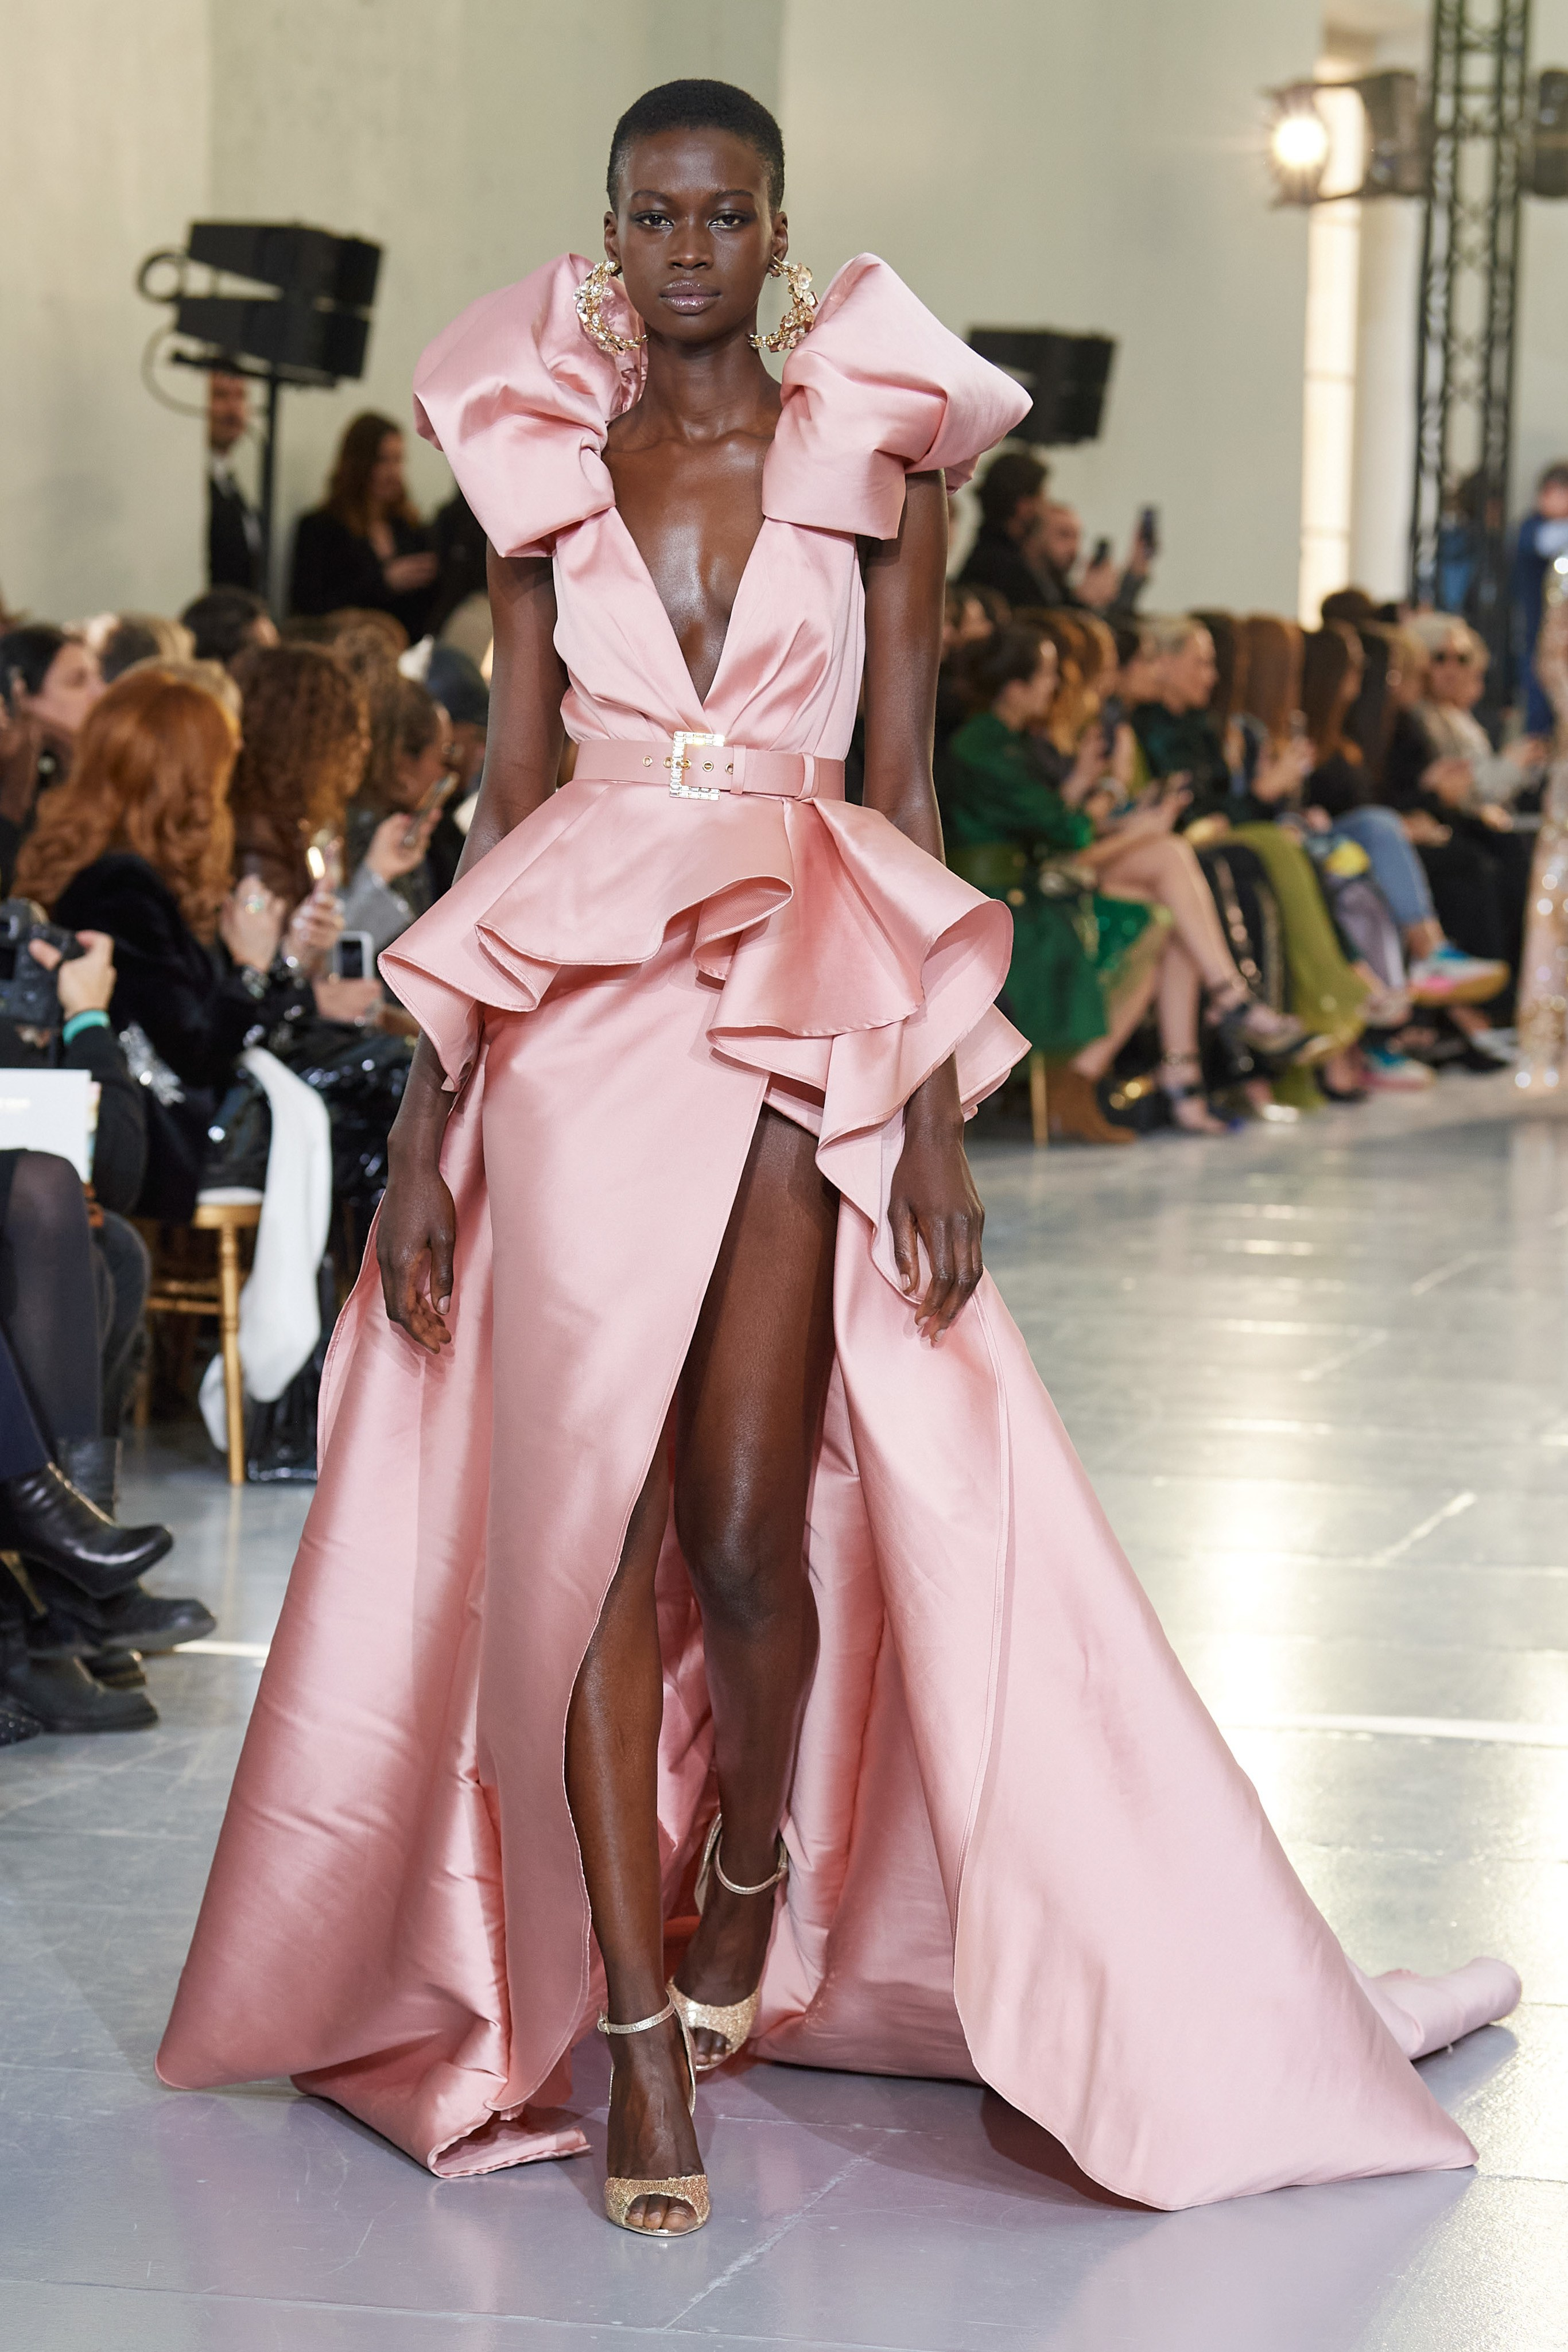 the-hautest-looks-at-the-paris-haute-couture-2020-fashion-week